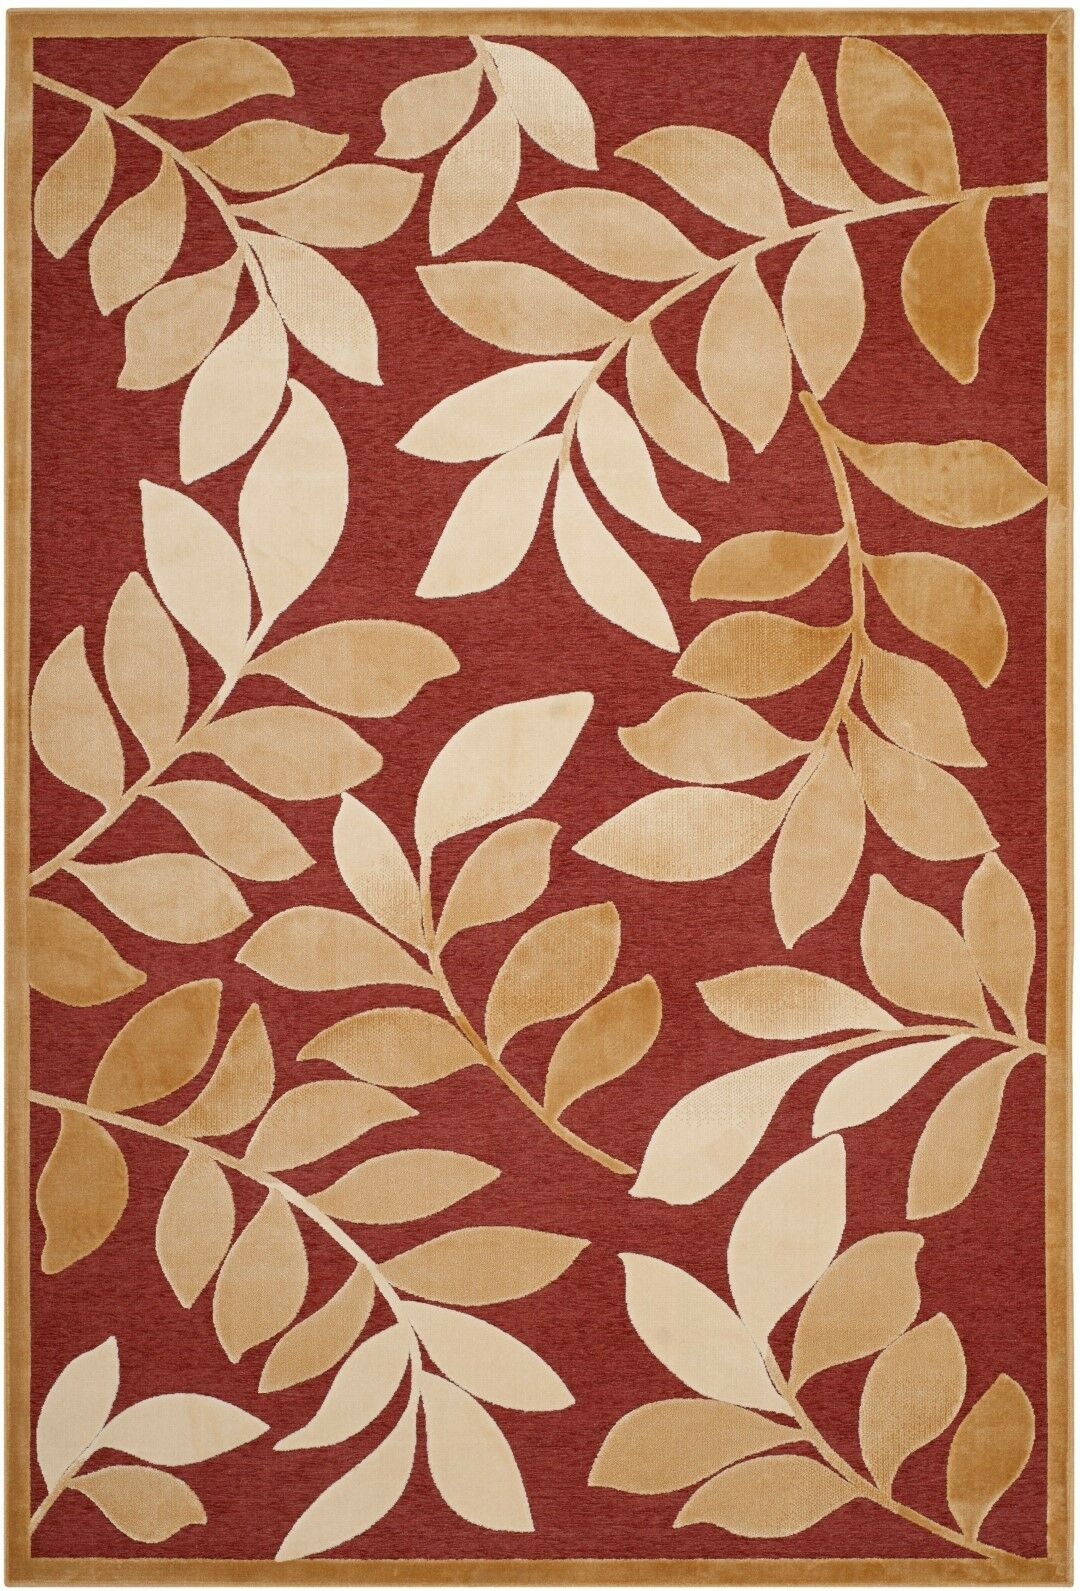 Martha Stewart Leafy Glade Area Rug Rug Size: Rectangle 5'3